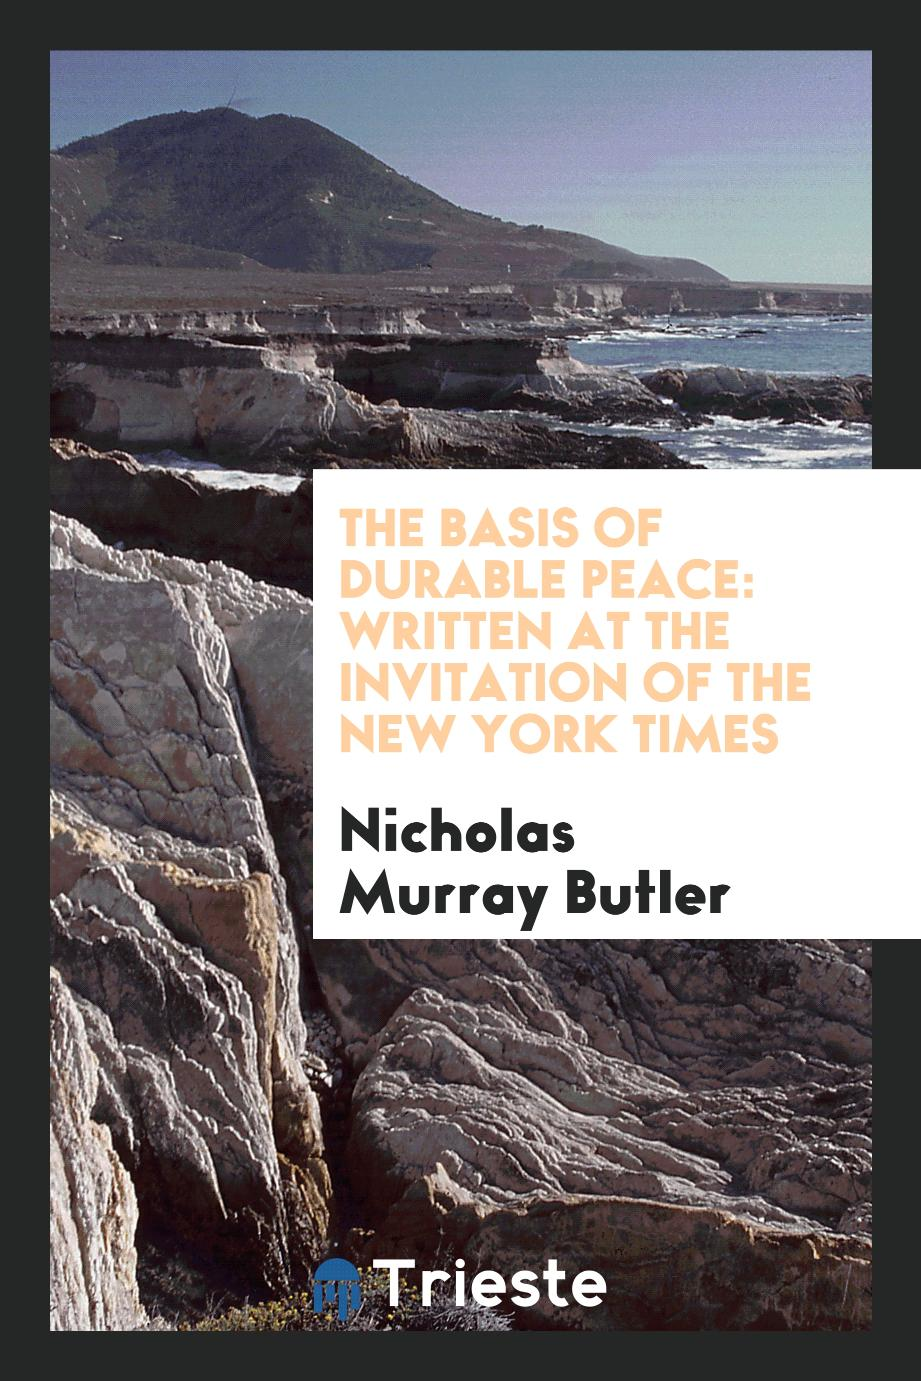 The Basis of Durable Peace: Written at the Invitation of the New York Times